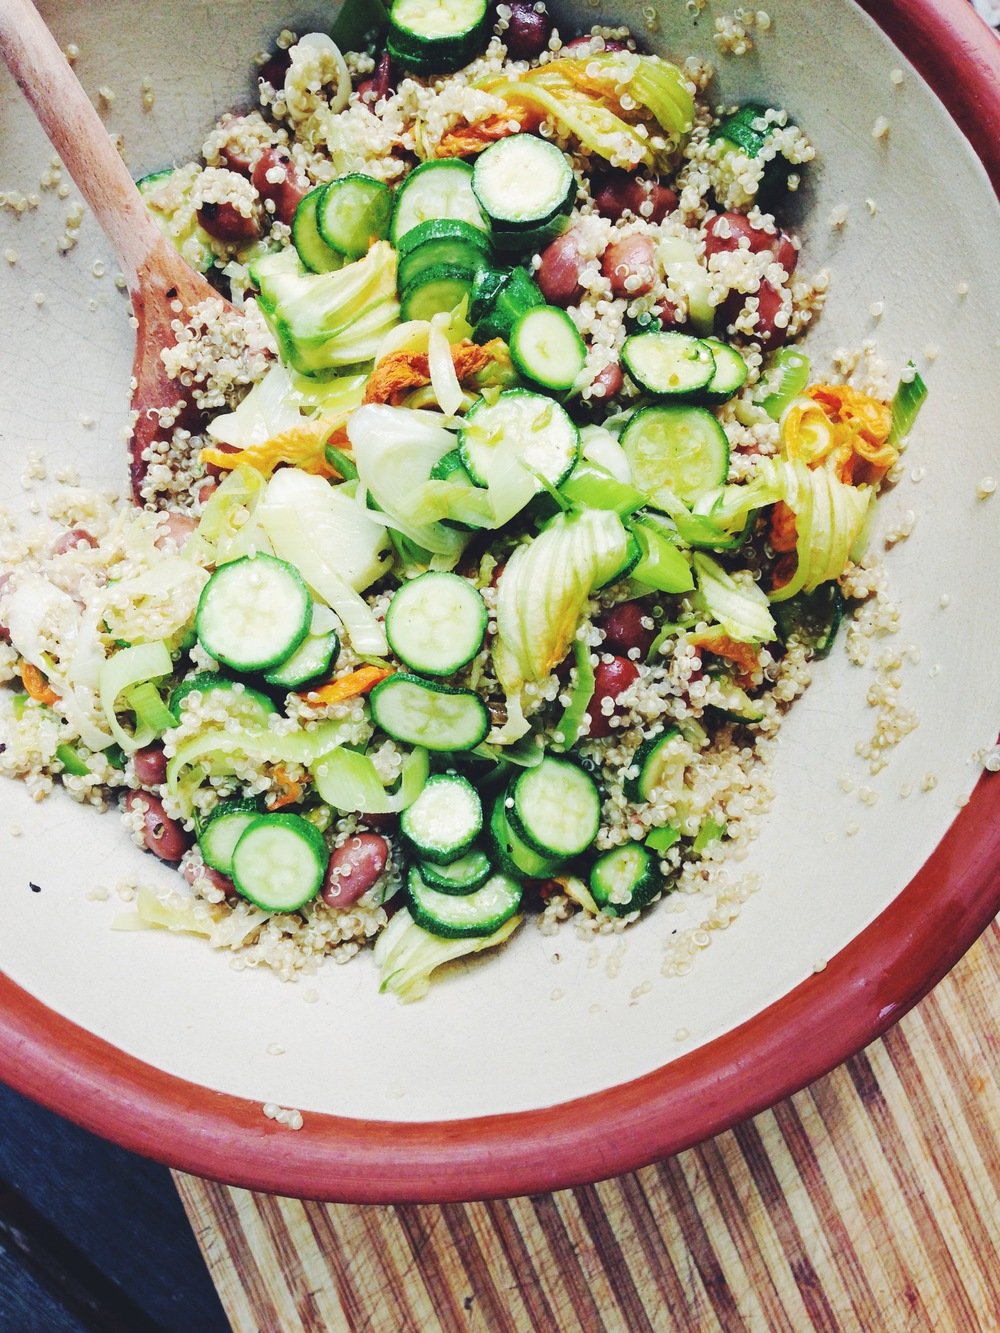 courgette+salad+with+quinoa+and+borlotti+beans.jpeg